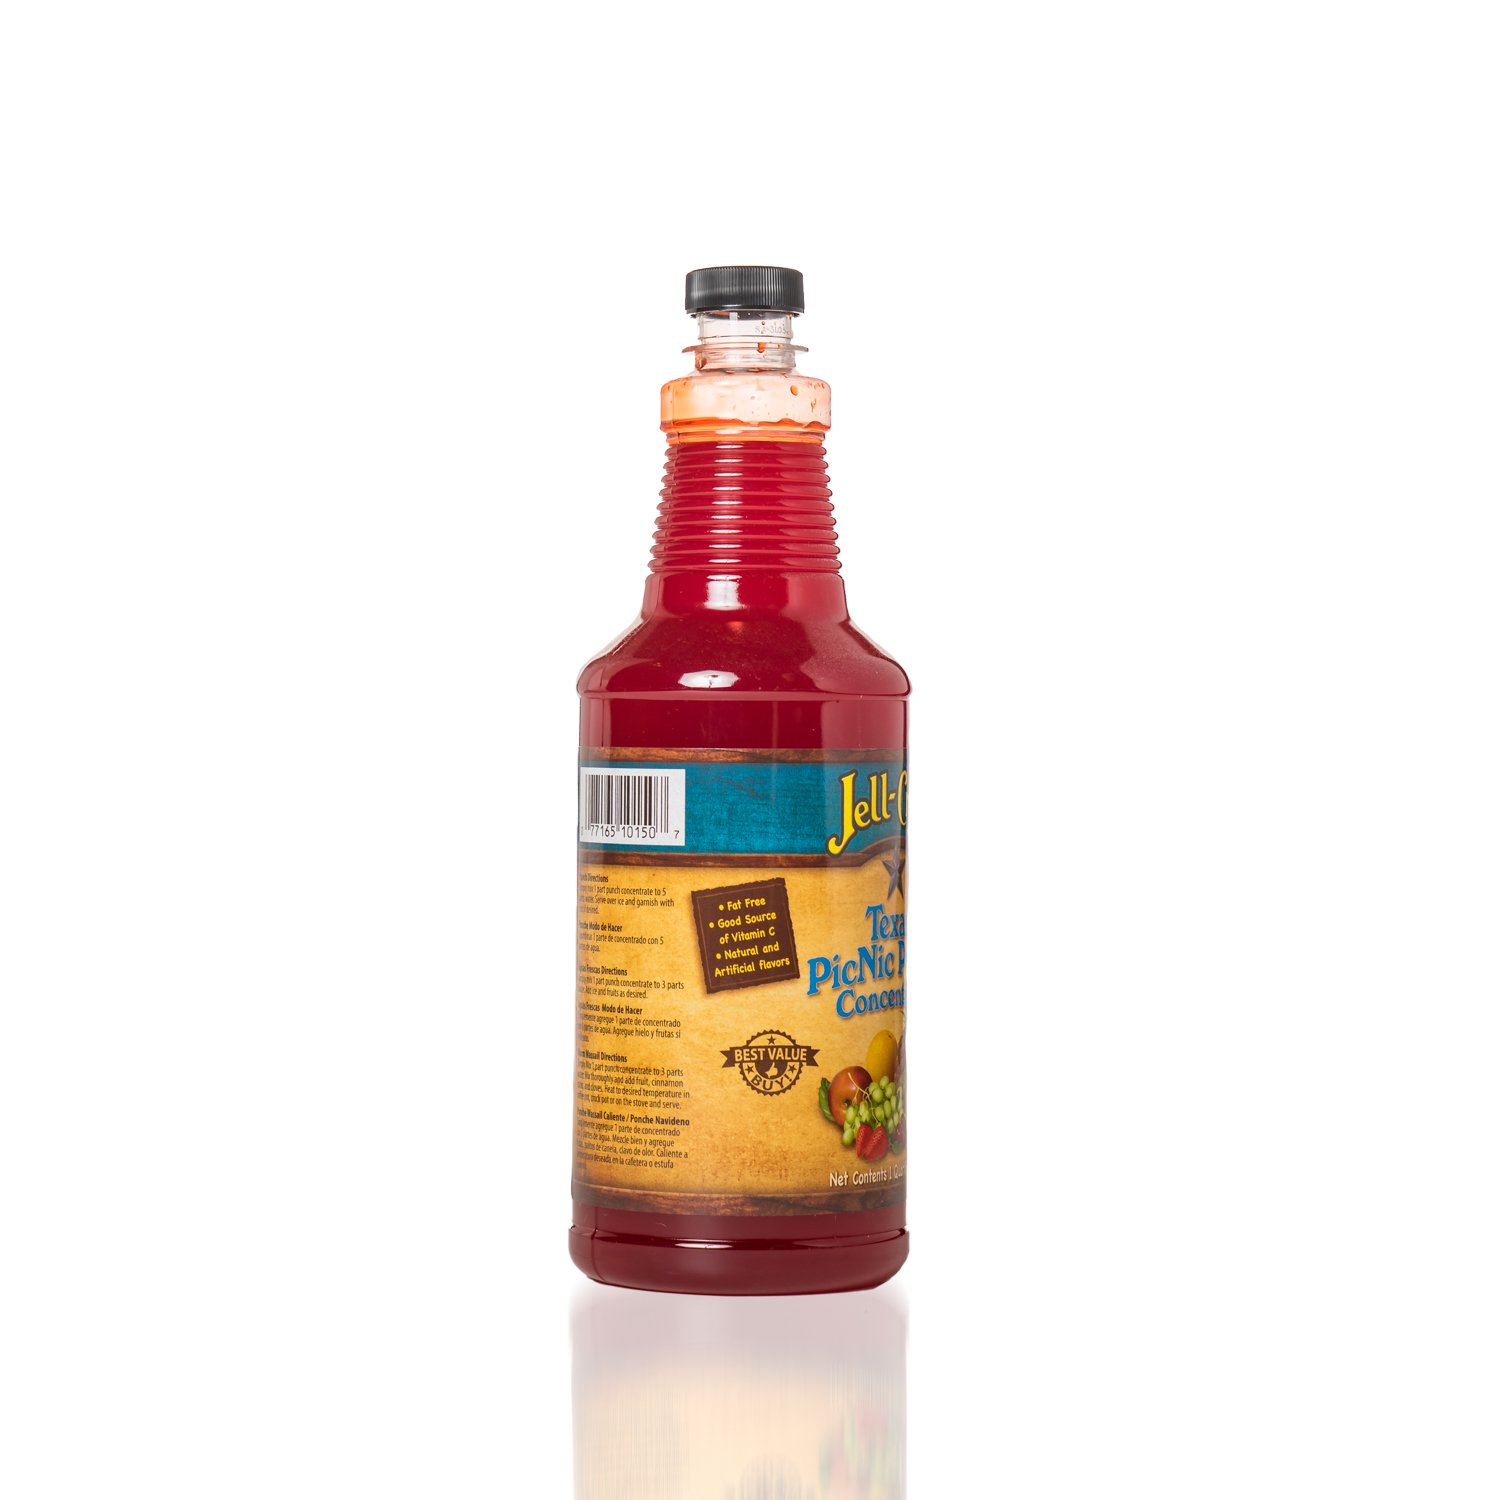 Amazon.com : Jell-Craft Picnic Punch Concentrate : Grocery & Gourmet Food